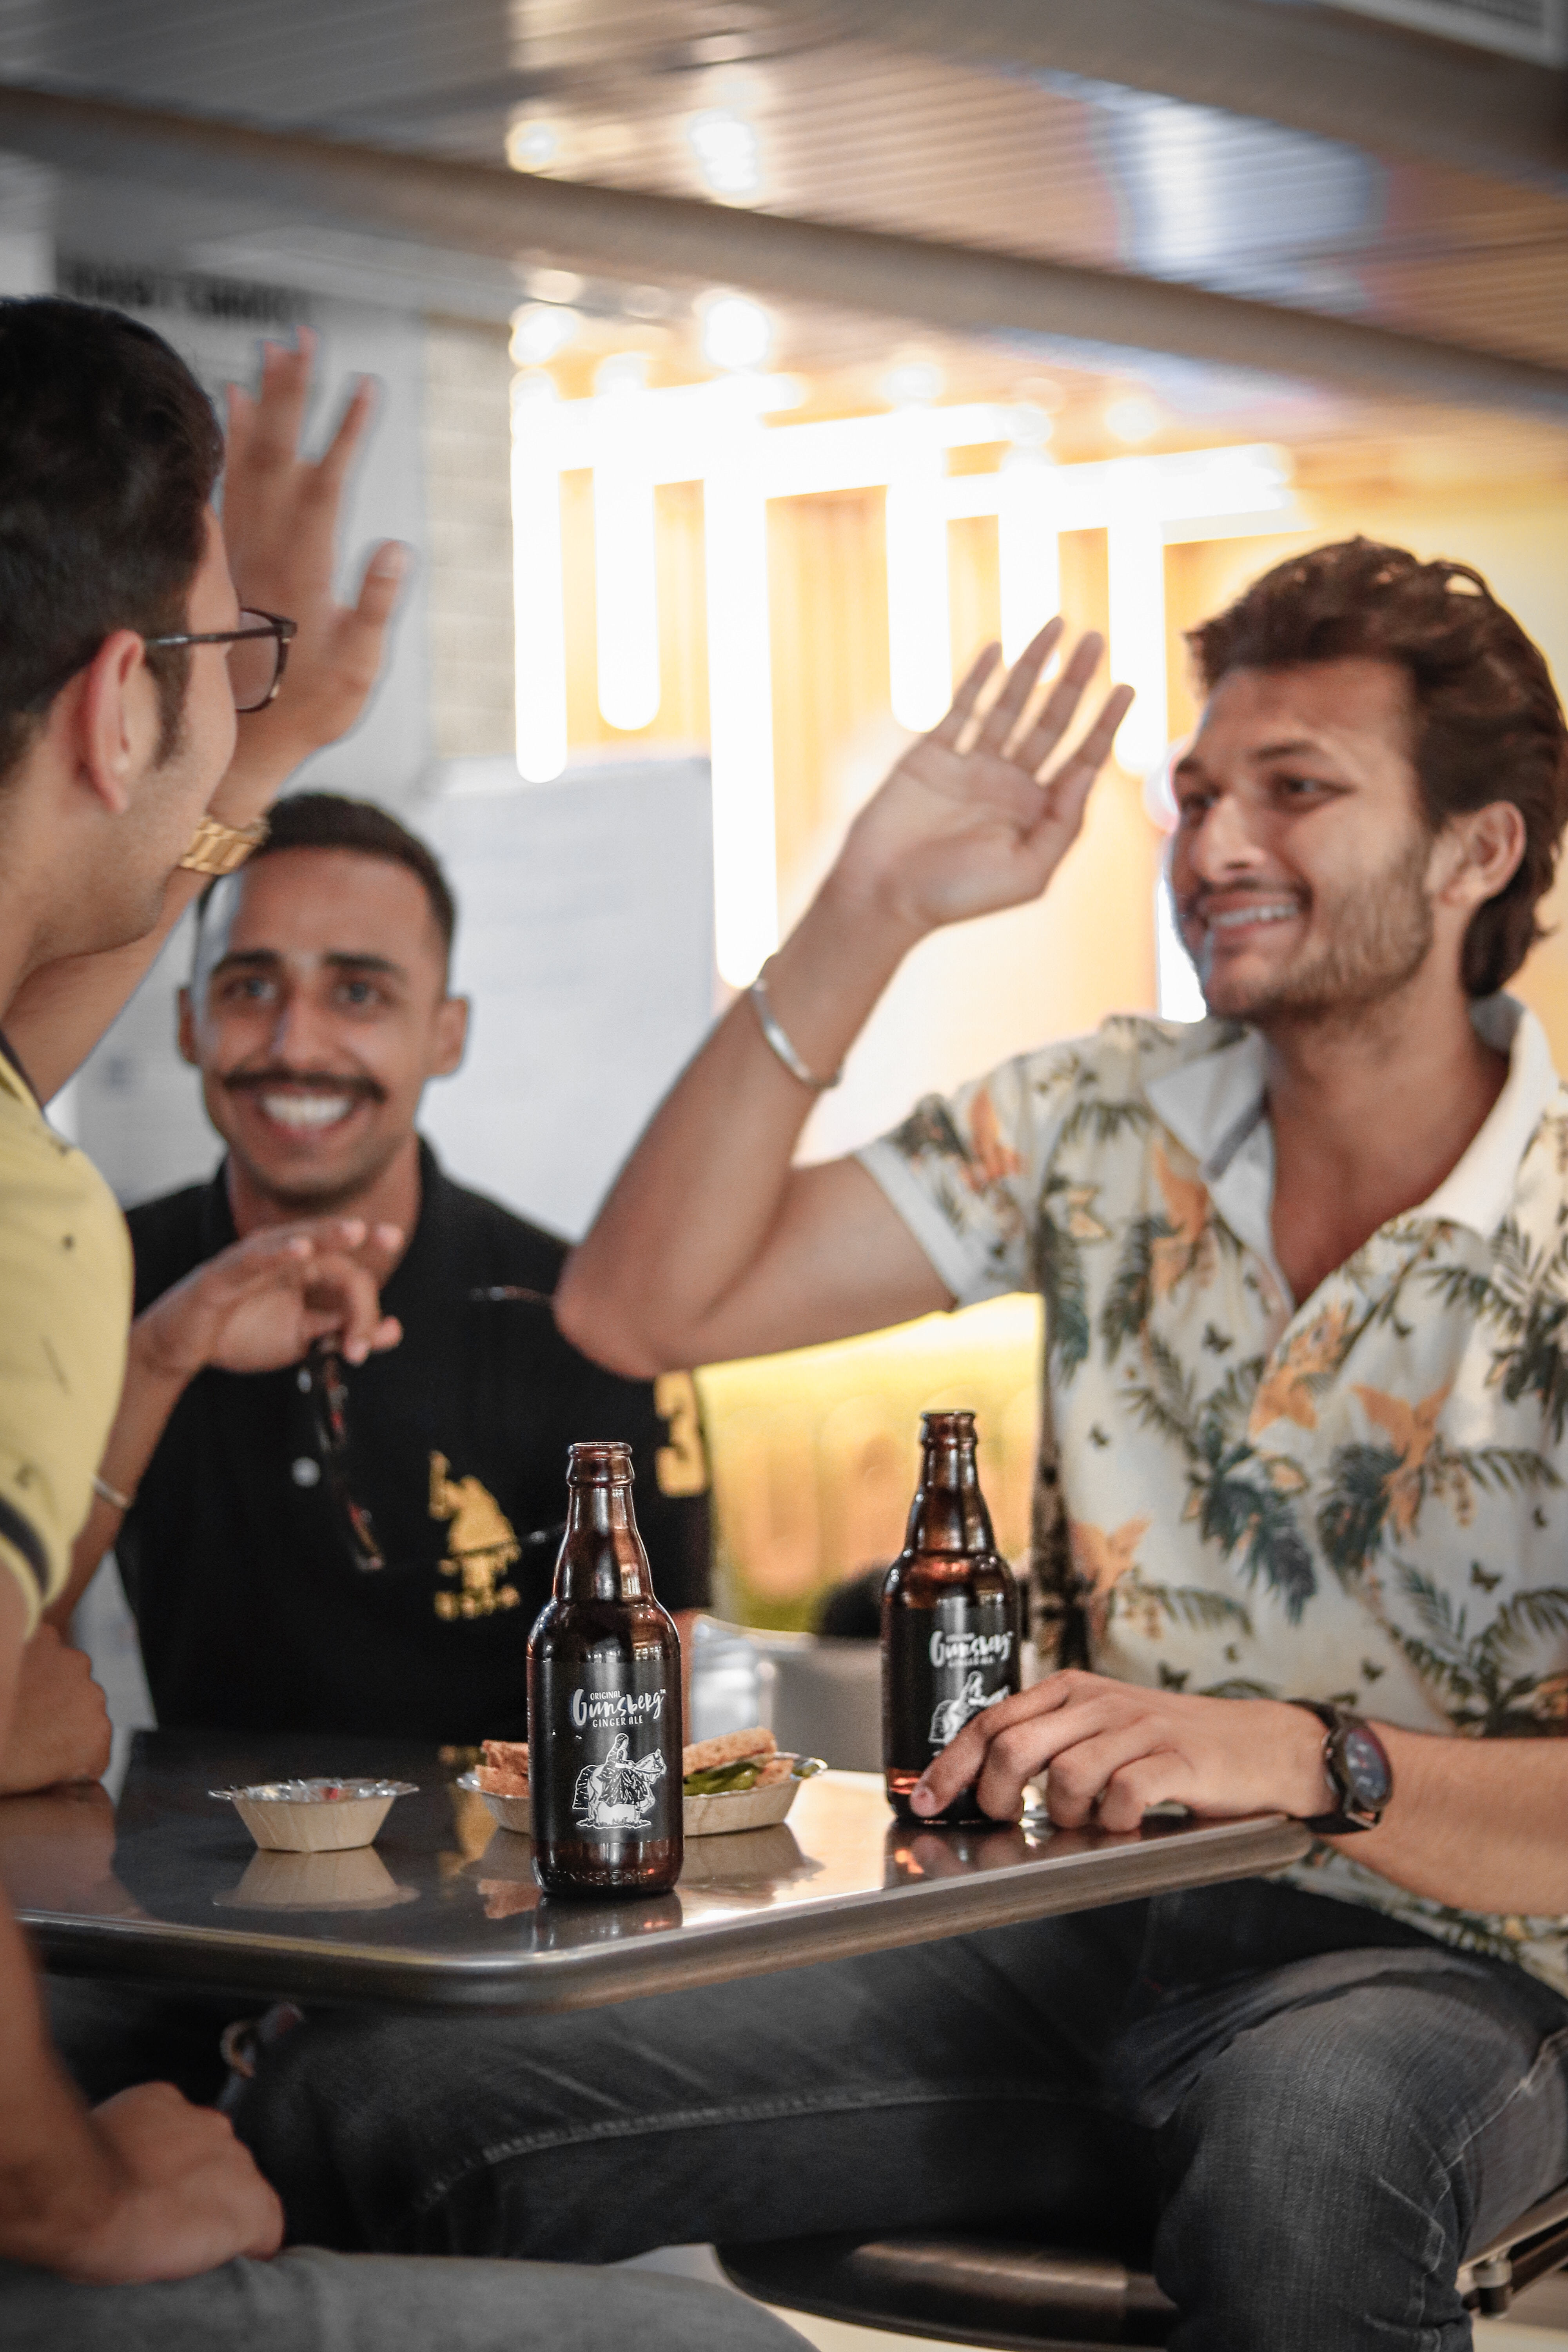 Imagine you and your friends at the bar, talking about your problems